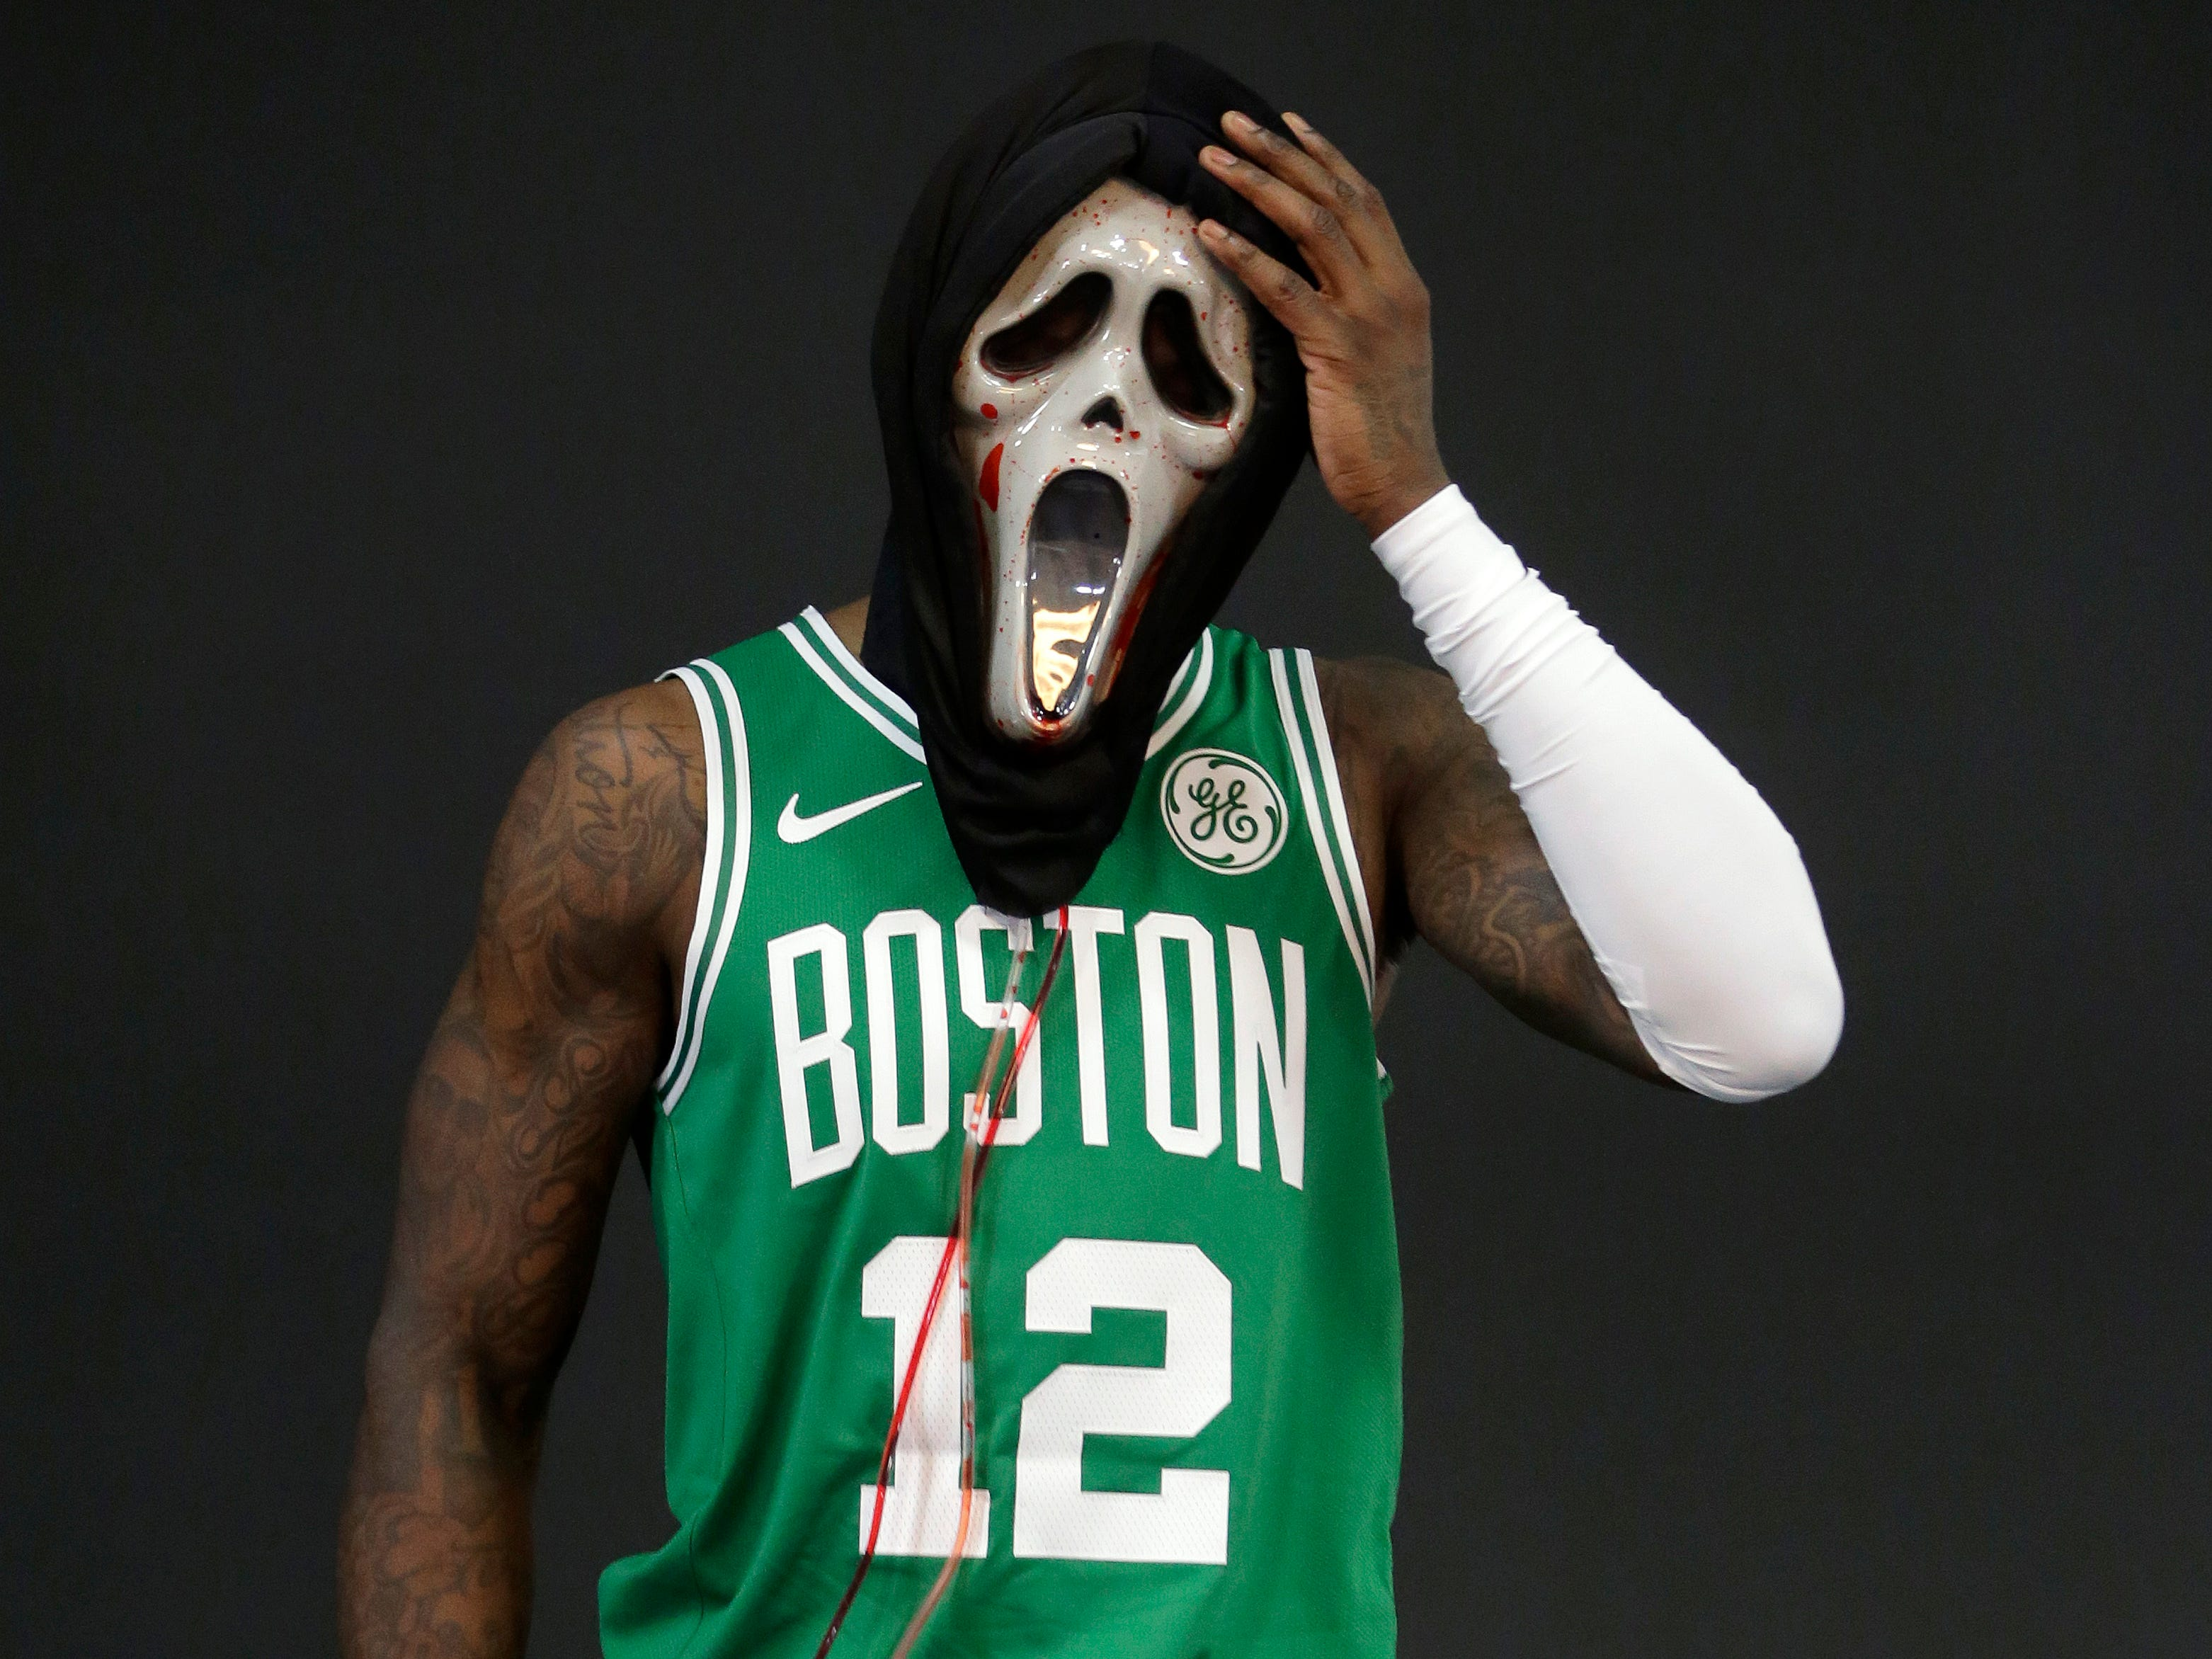 Boston Celtics guard Terry Rozier tries on a mask during a photo shoot at  media day.